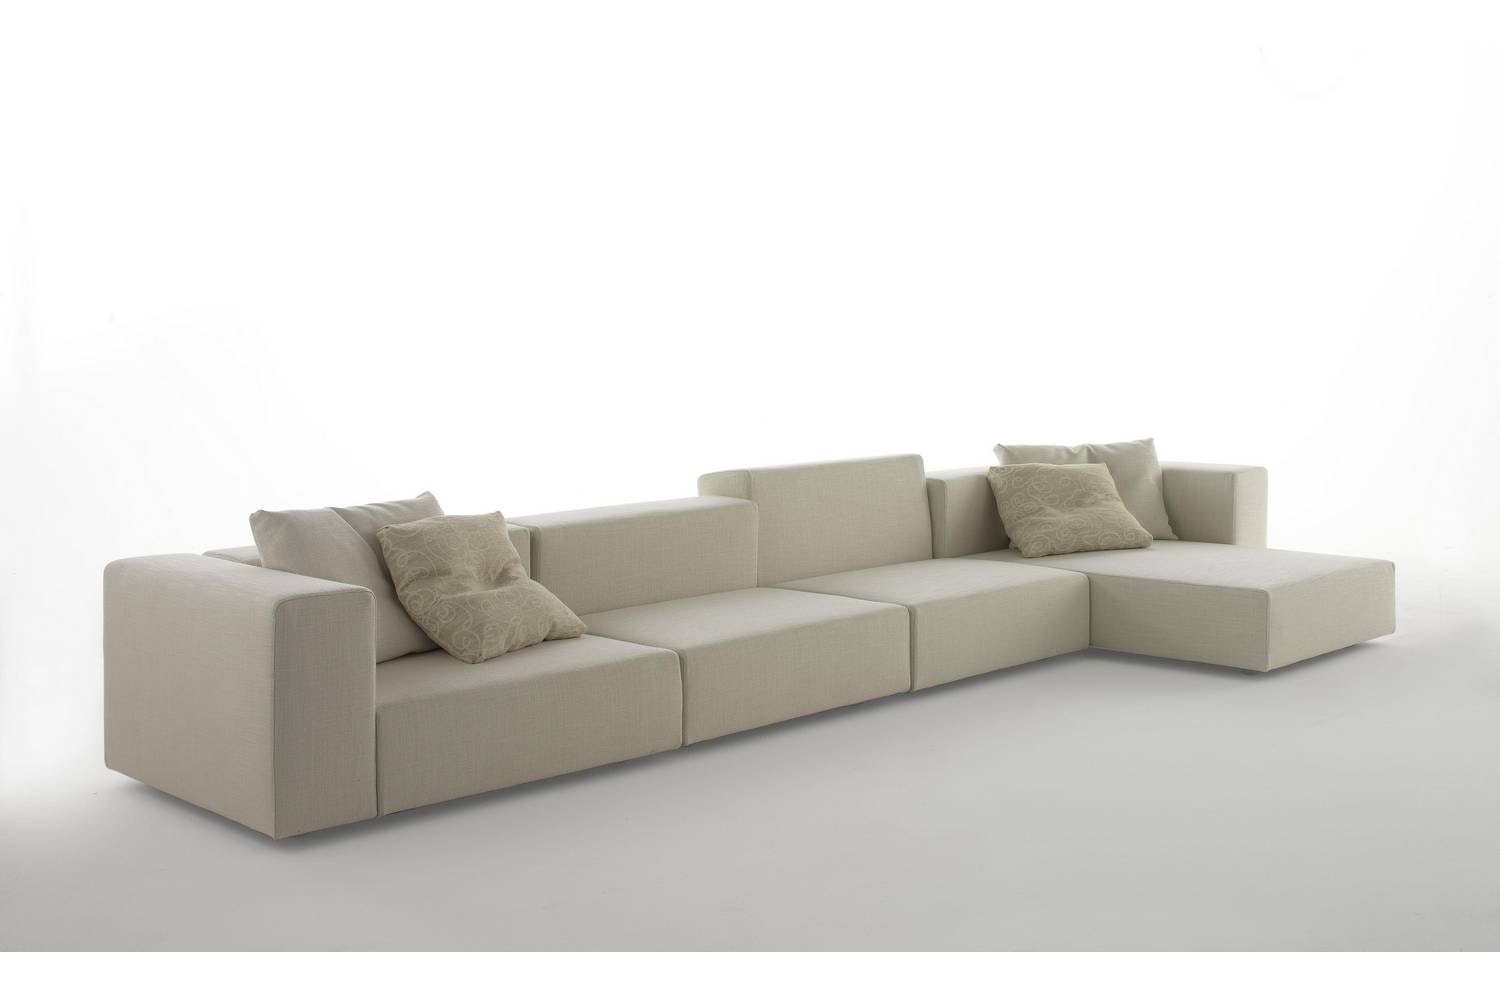 Wall.1 Sofa by Piero Lissoni for Living Divani